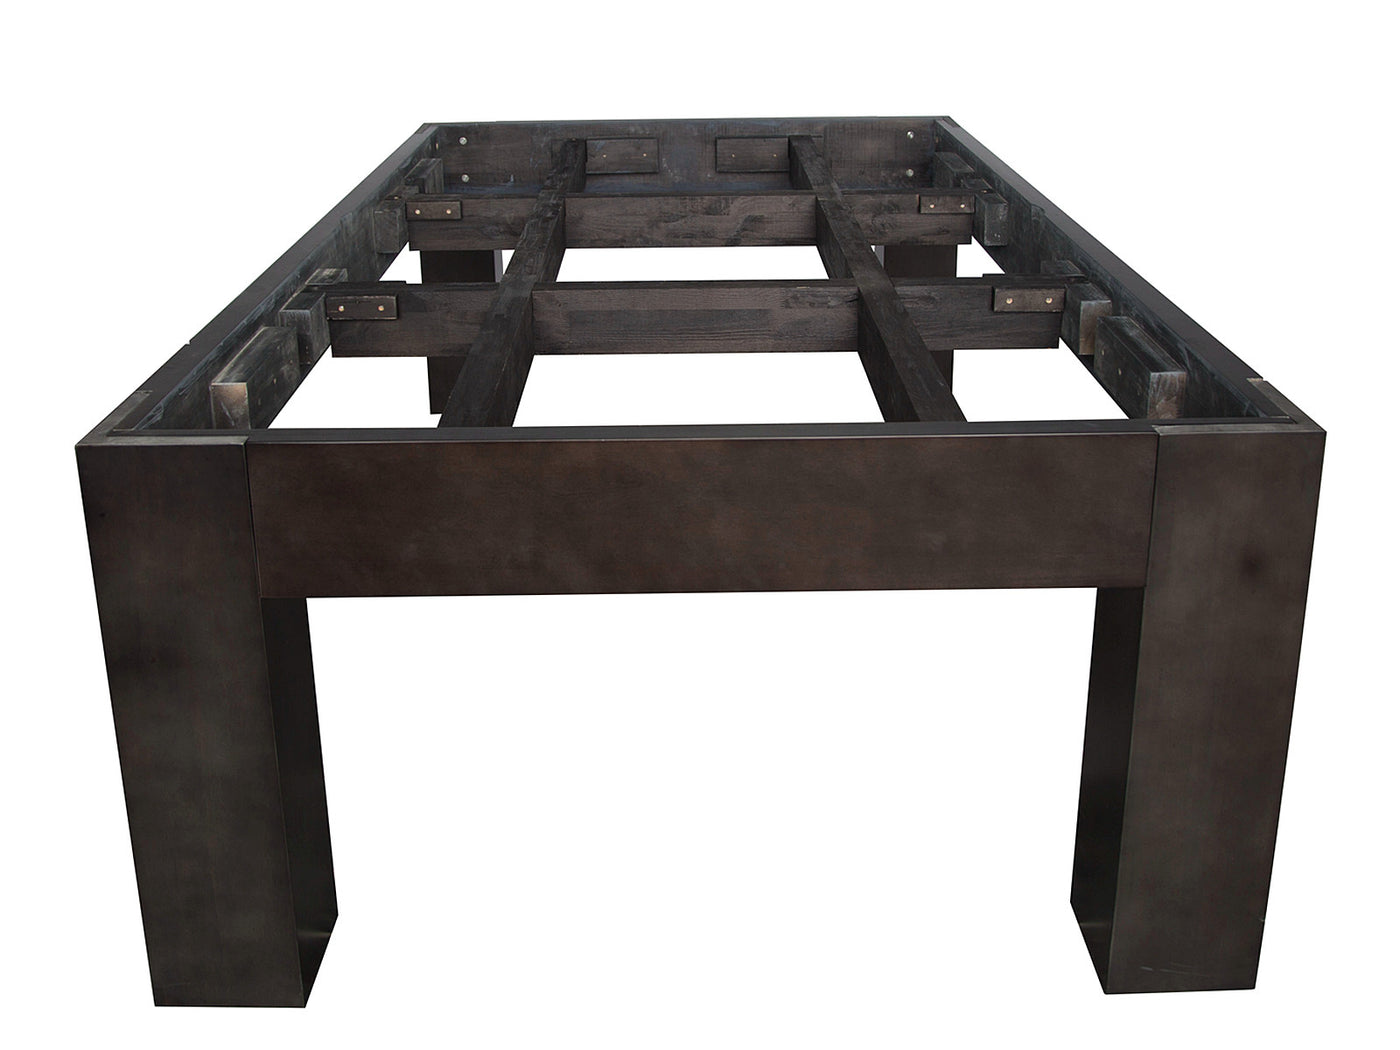 Plank And Hide Fulton Pool Table Robbies Billiards - Pool table base